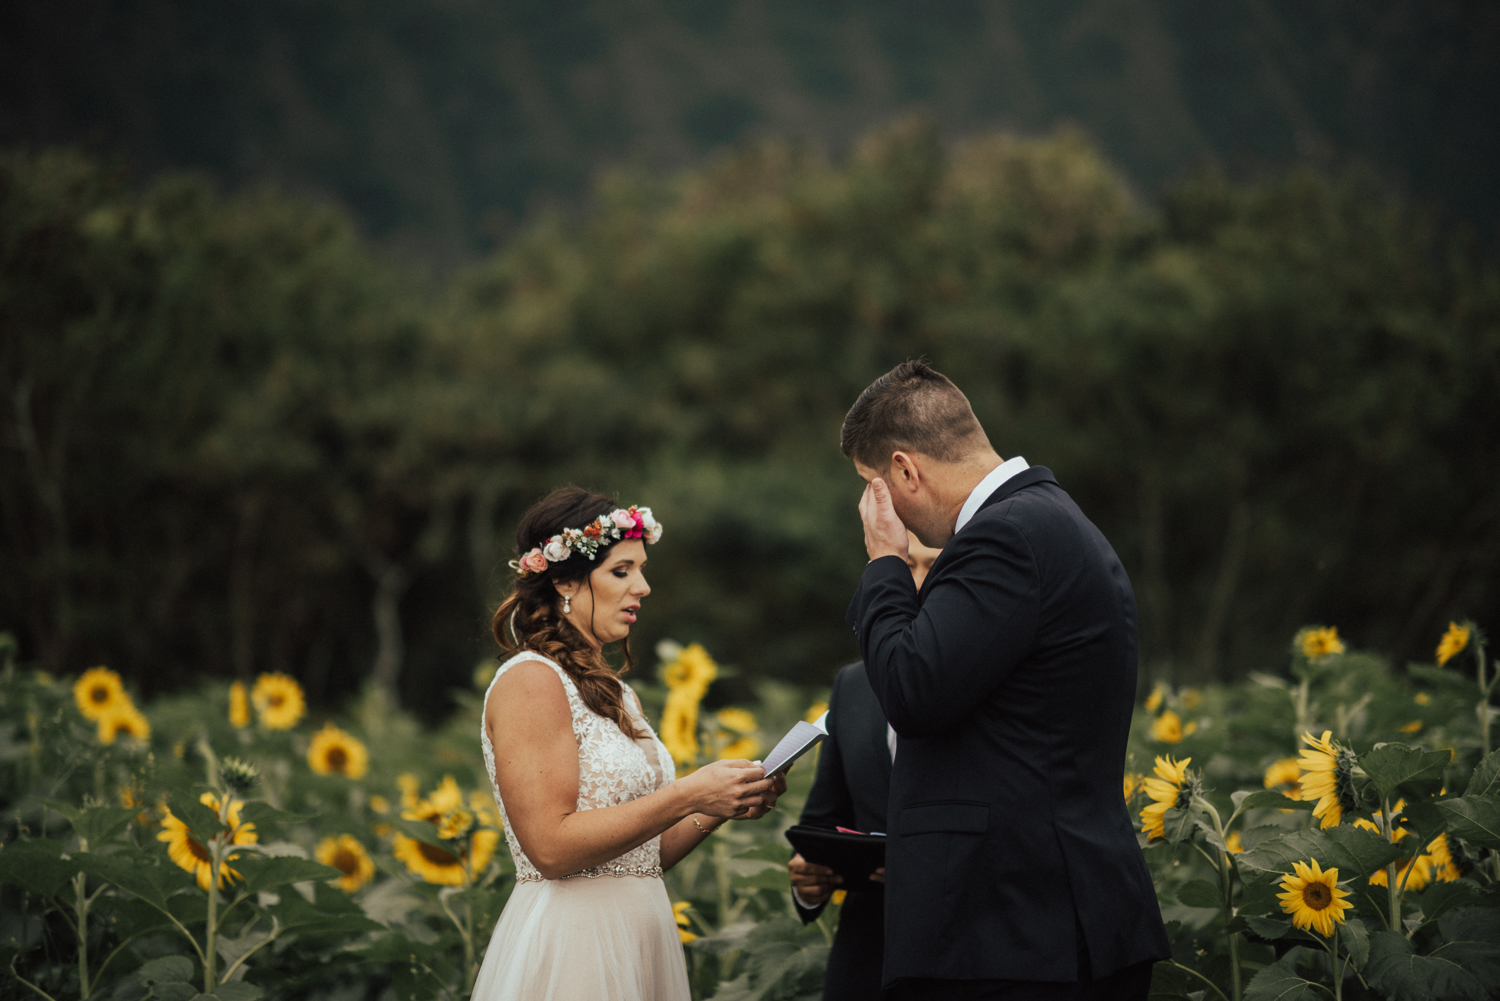 adventurous-Hawaii-elopement-photographers-50.jpg